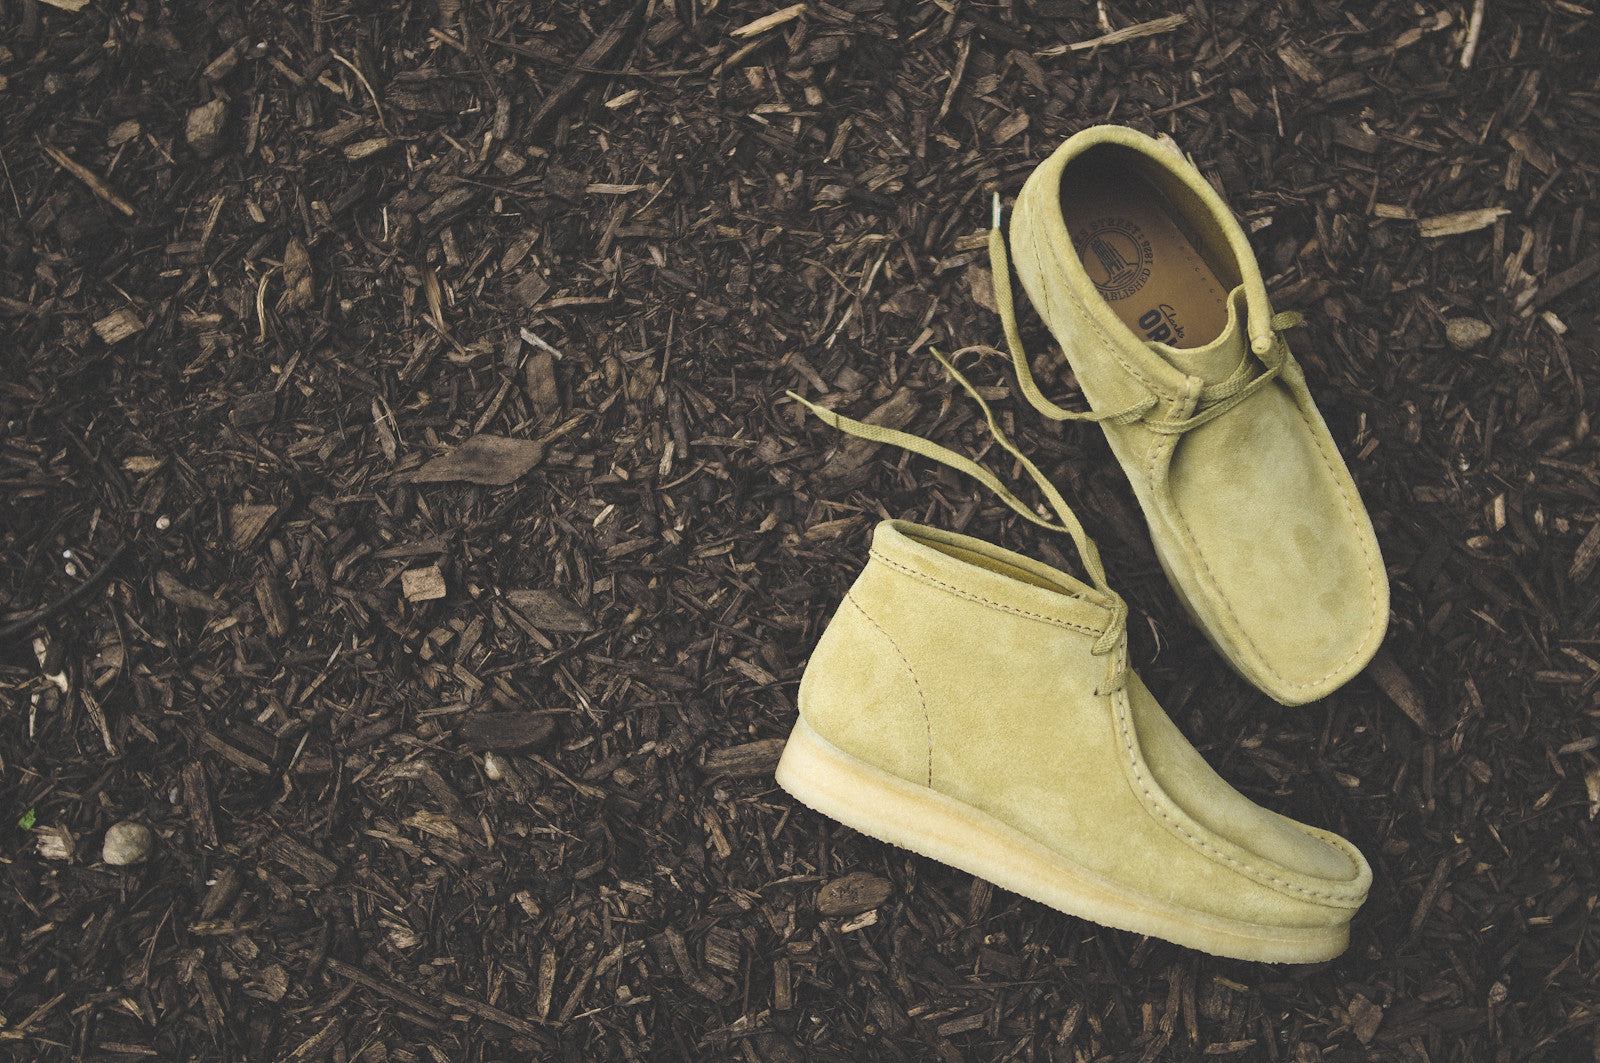 Clarks Wallabee Boot - Maple Suede